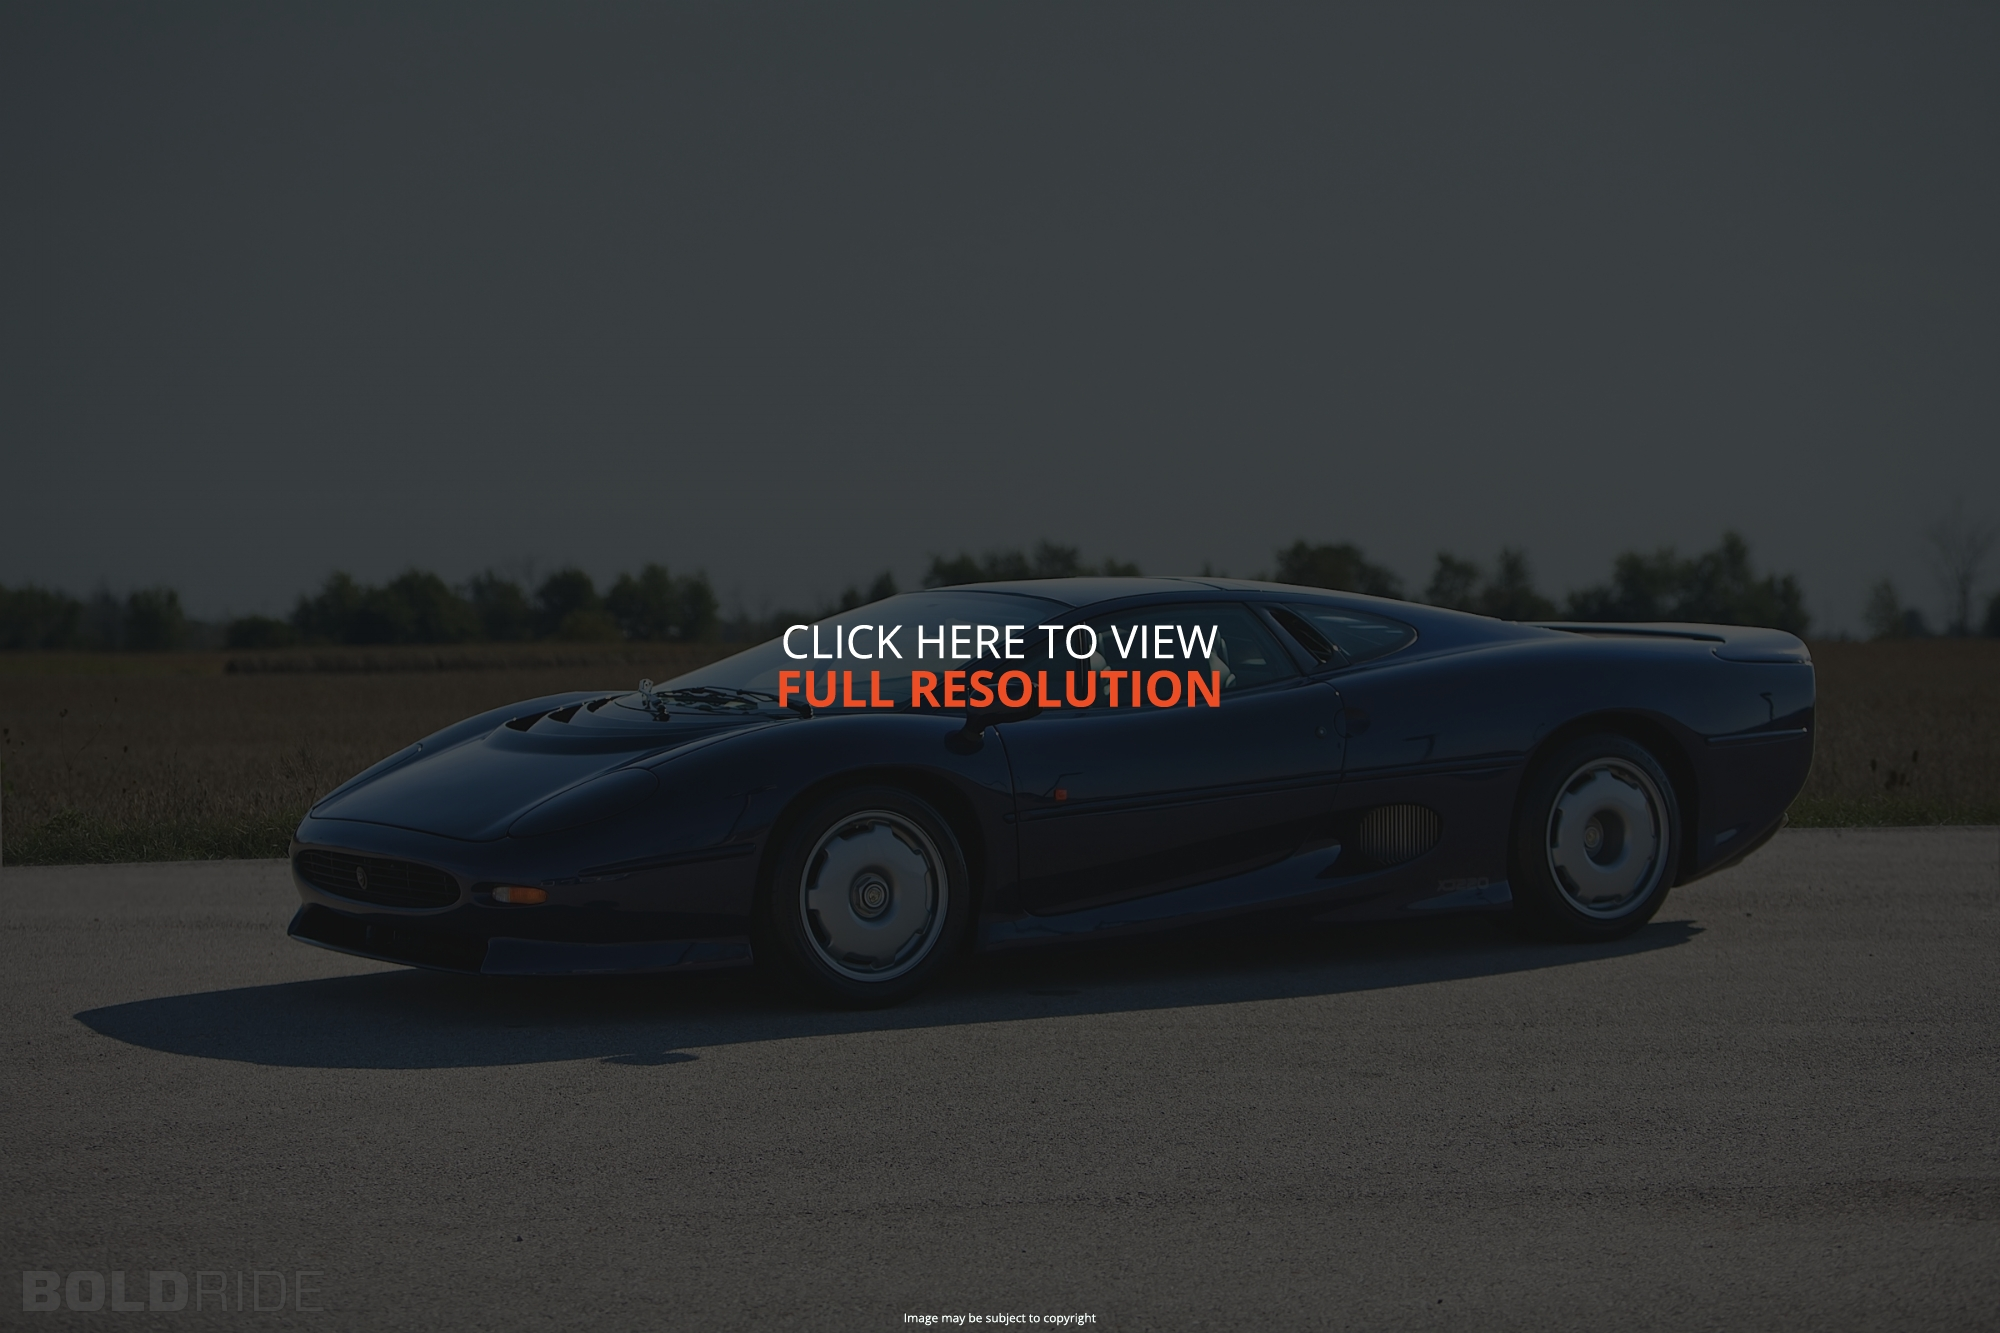 jaguar xj220 pictures #14